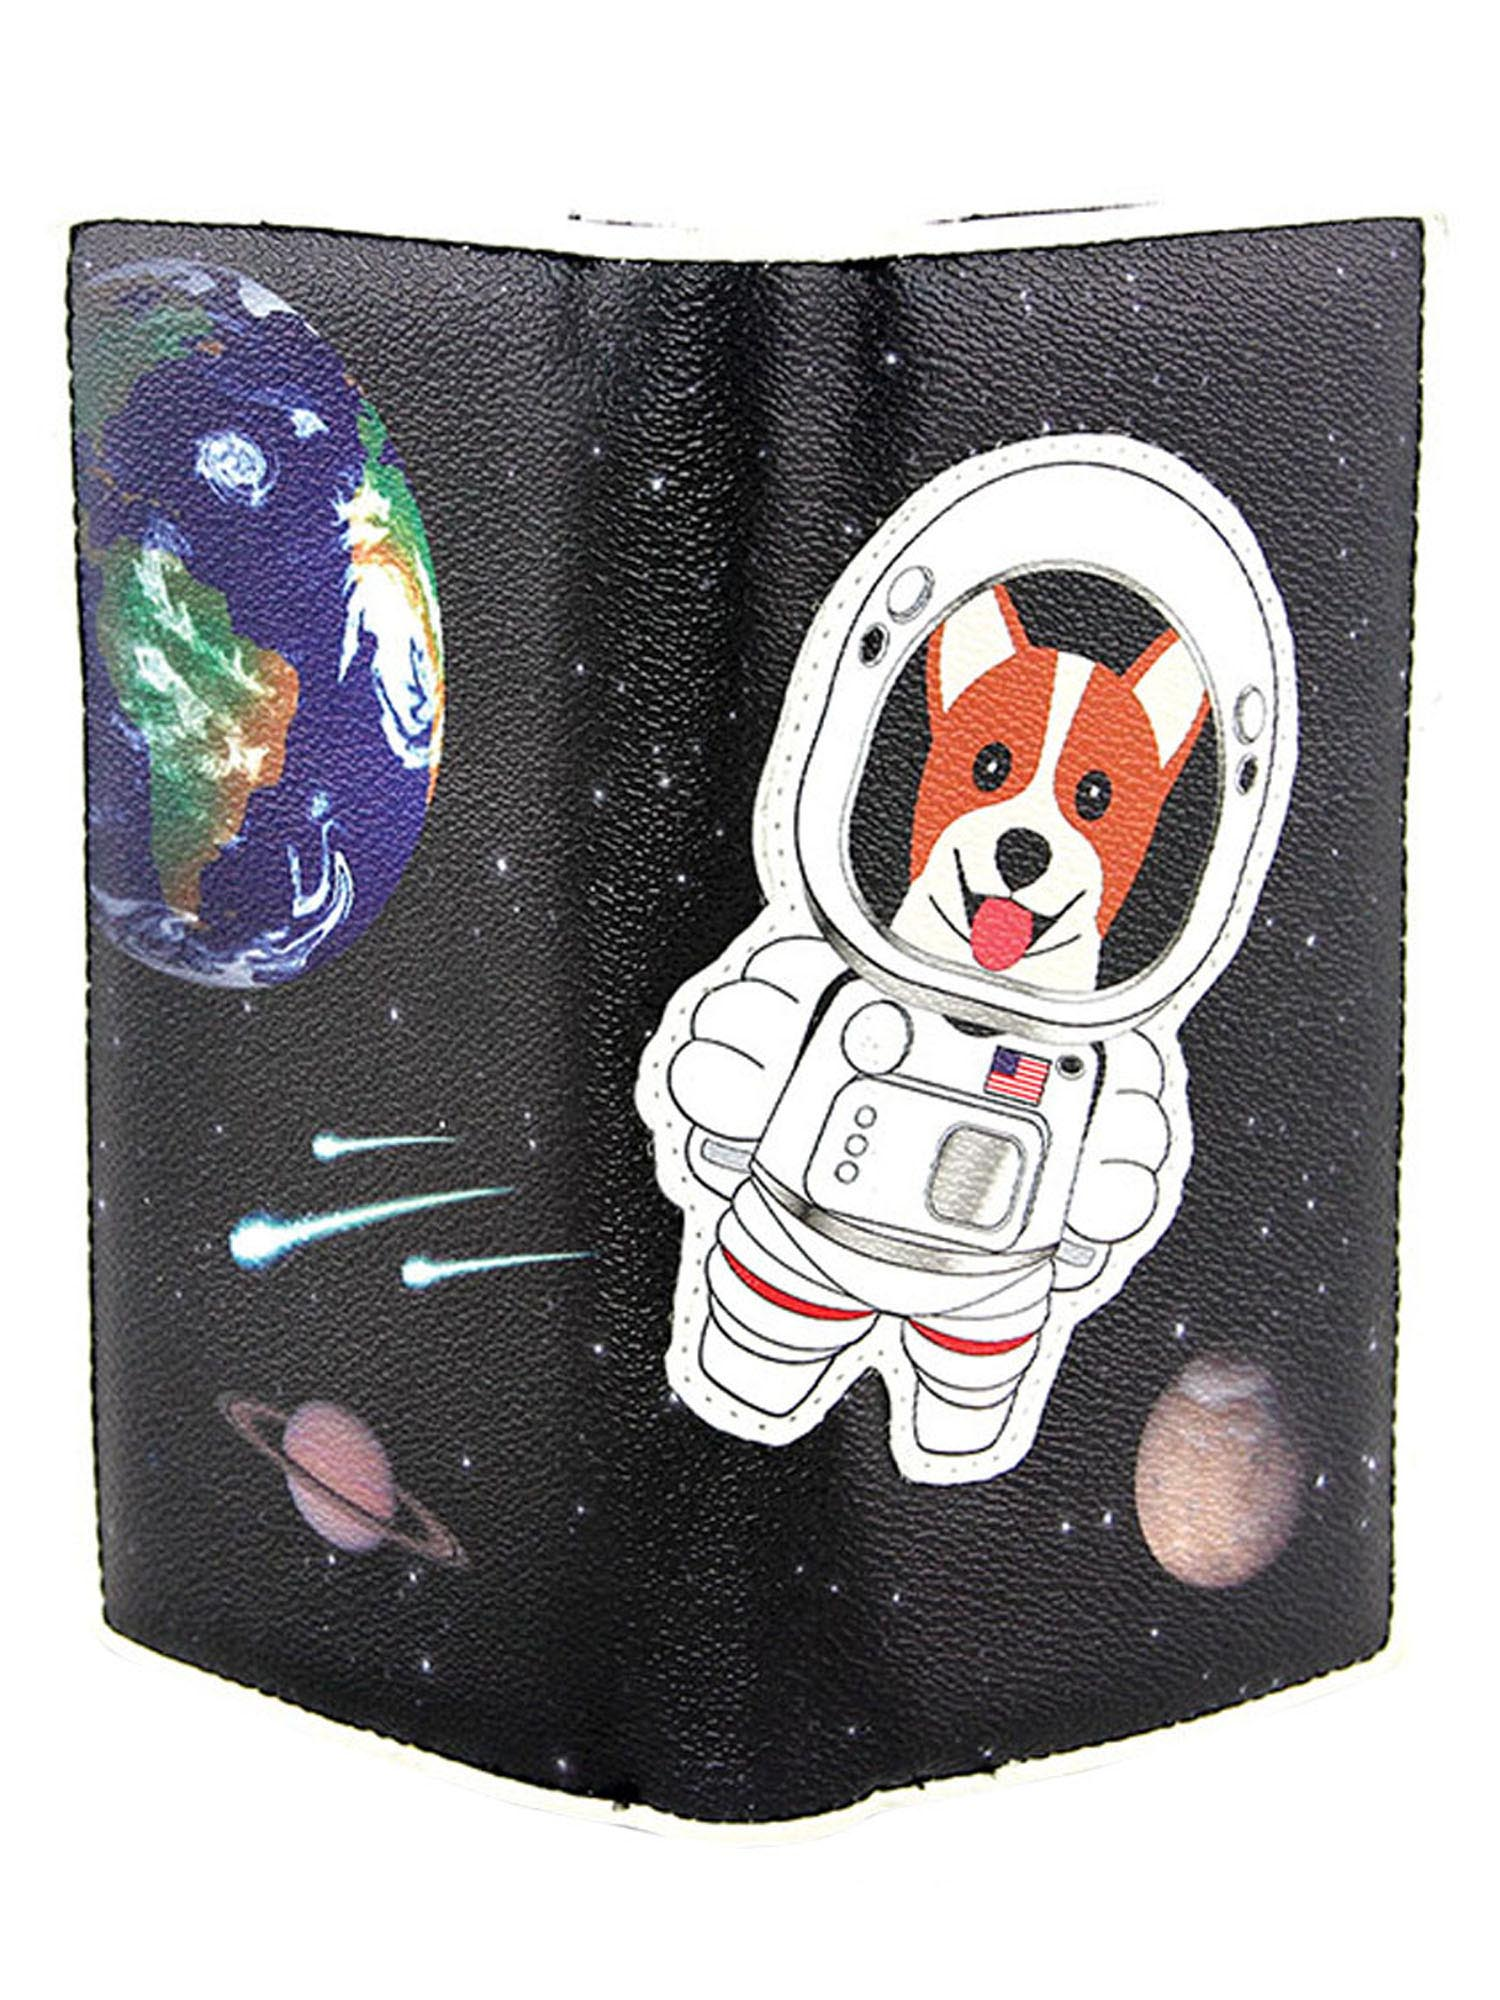 Sleepyville Critters Cute Astronaut Corgi Puppy Dog Outer Space Spaceship Wallet